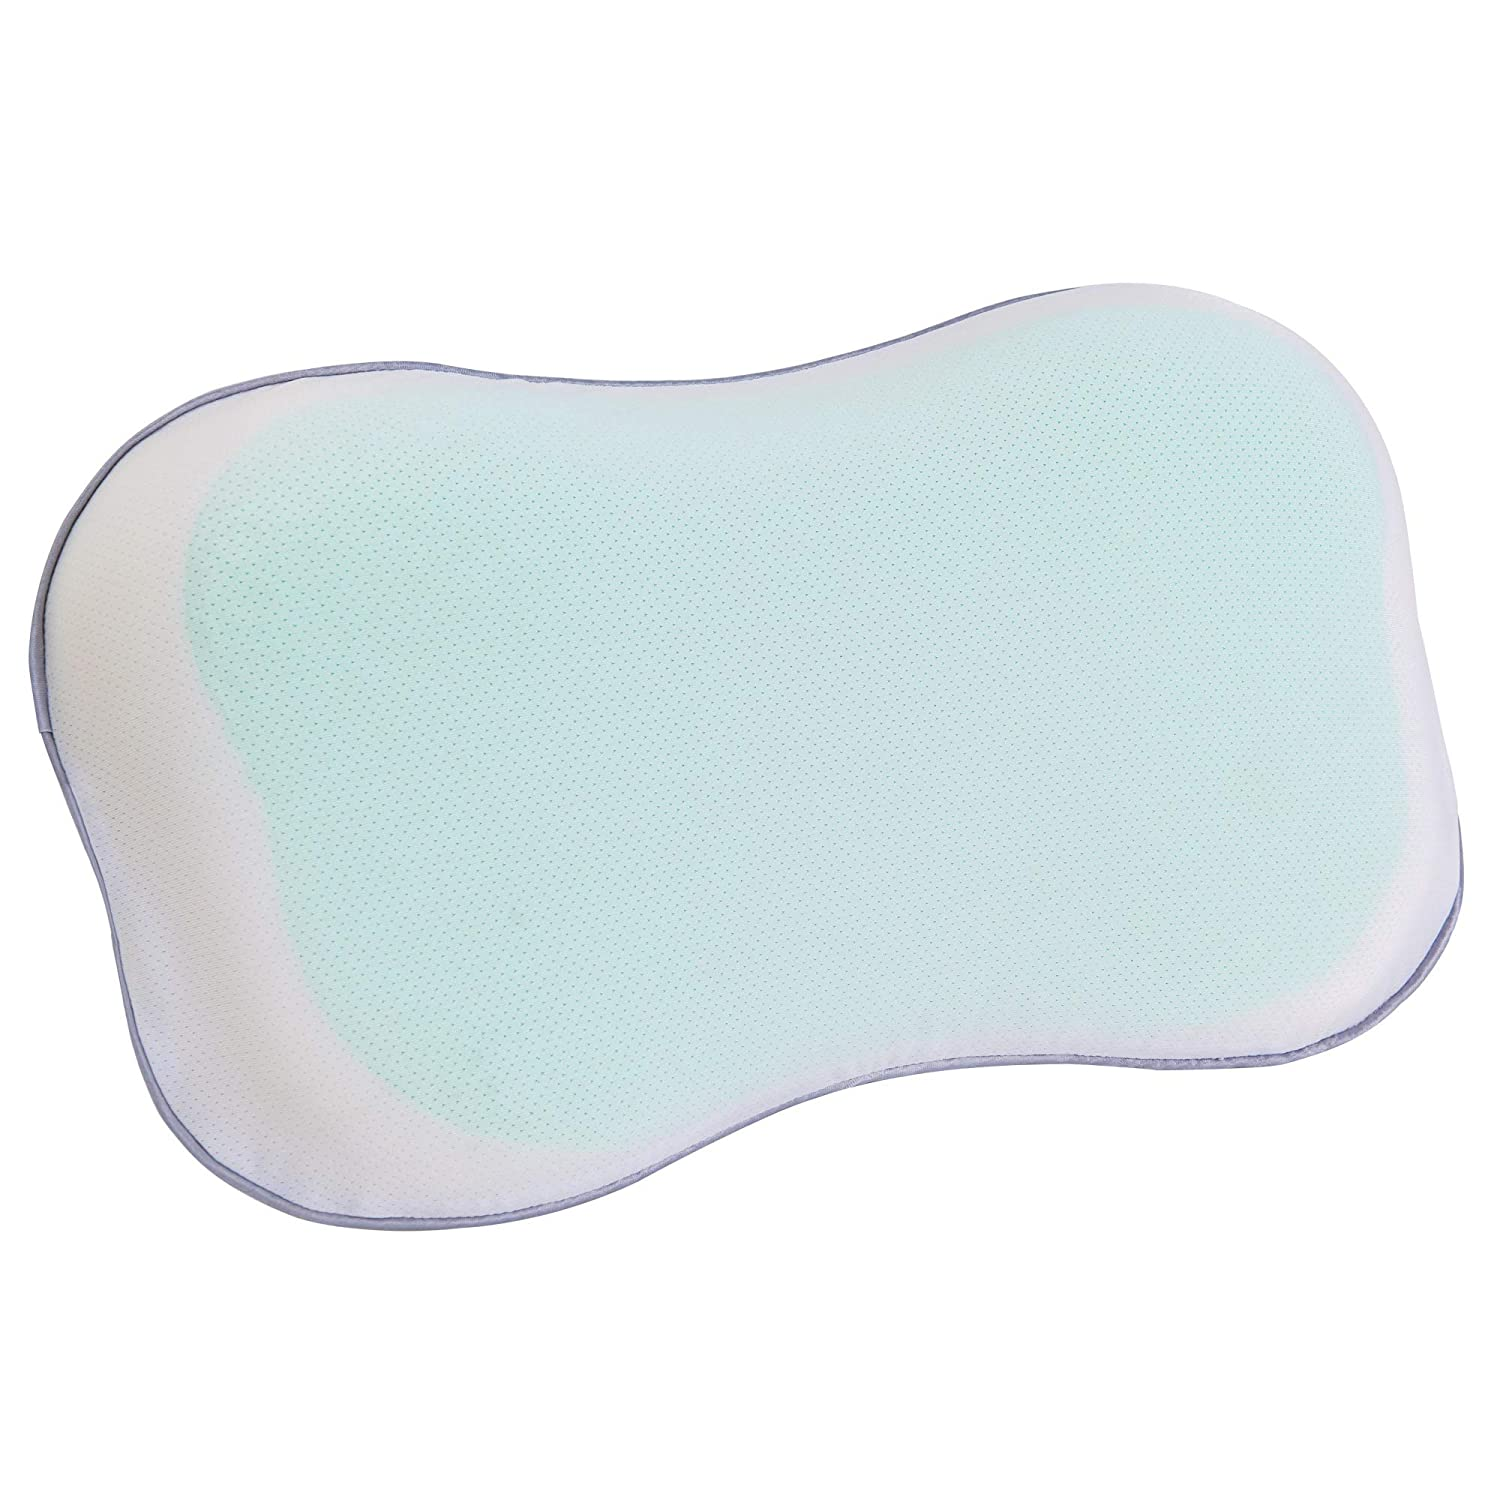 Ergonomic Baby Pillow with Neck Support /& Washable Pillowcase for Back//Side//Stomach Sleepers for 2-5Y Kids Mkicesky Toddler Memory Foam Contour Pillow